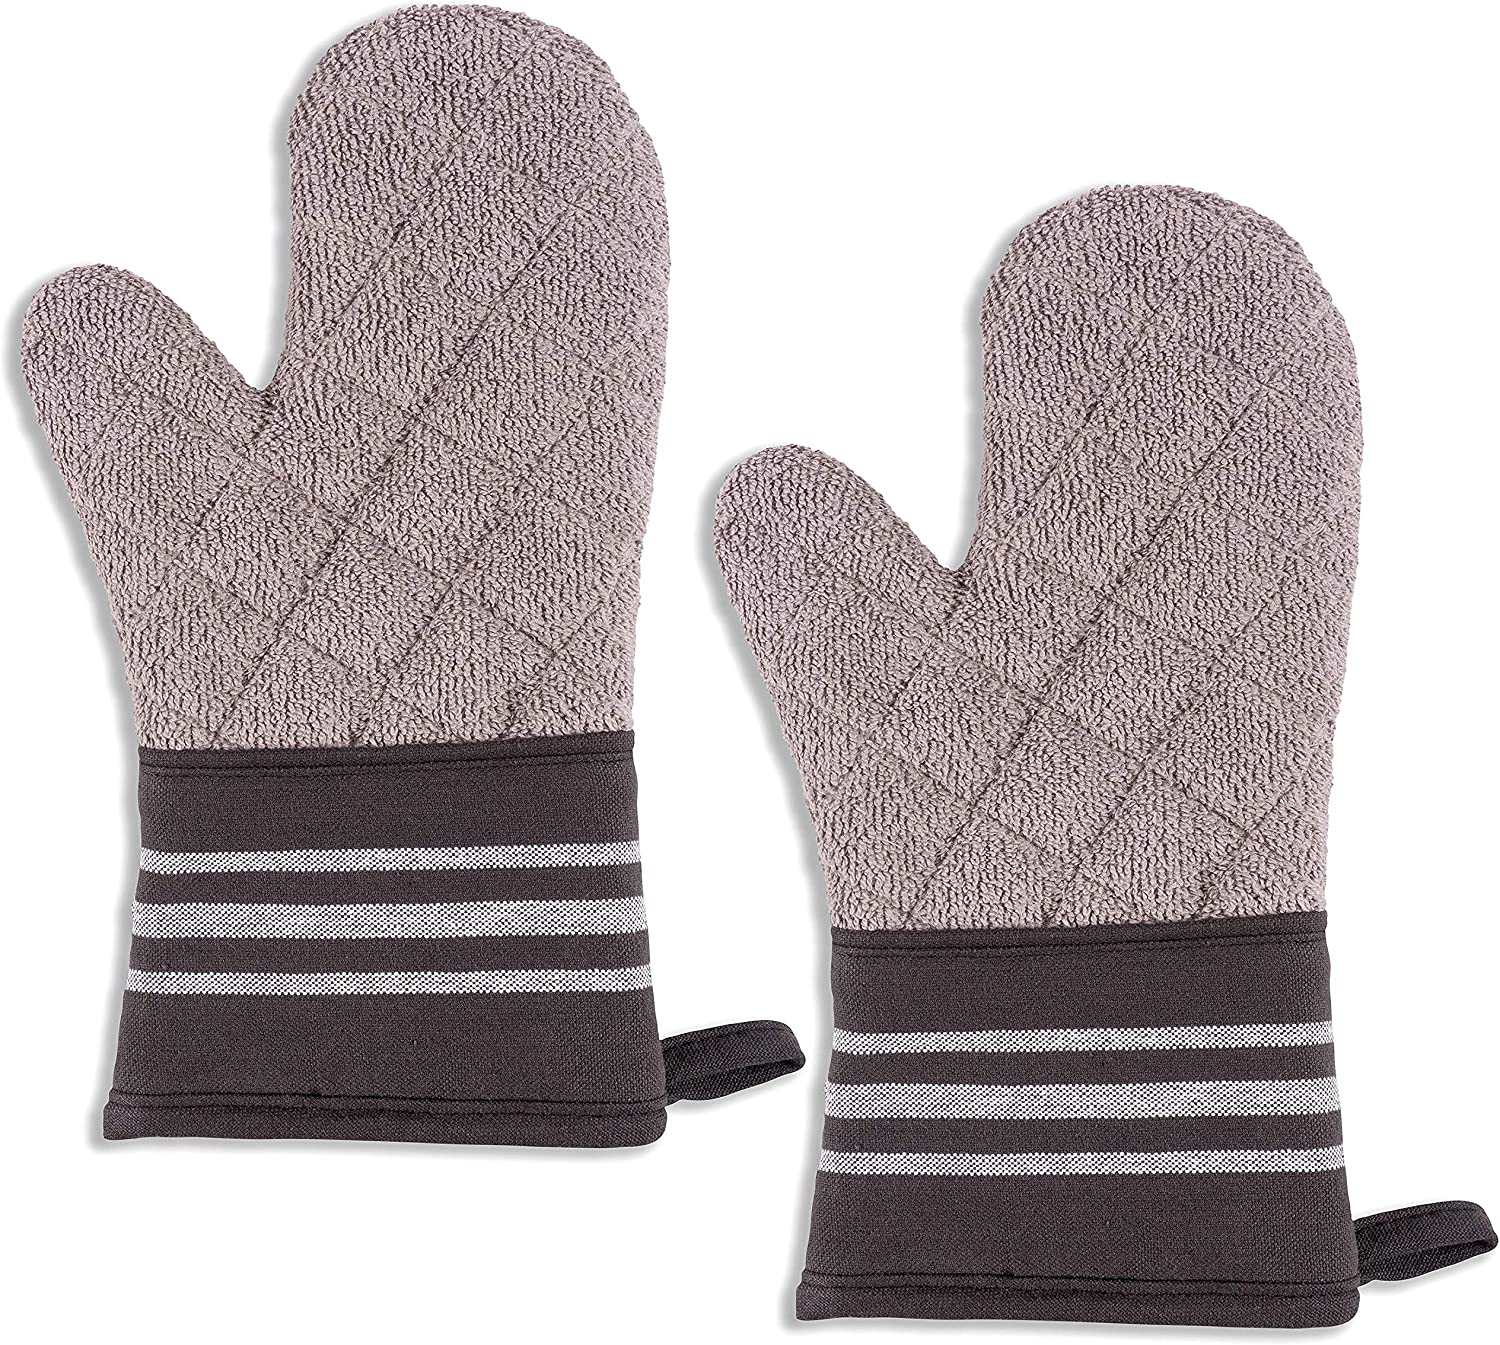 KAF Home Christopher Kimball's Milk Street Kitchen French Stripe Terry Lined Oven Mitt Set of 2 (Raven)